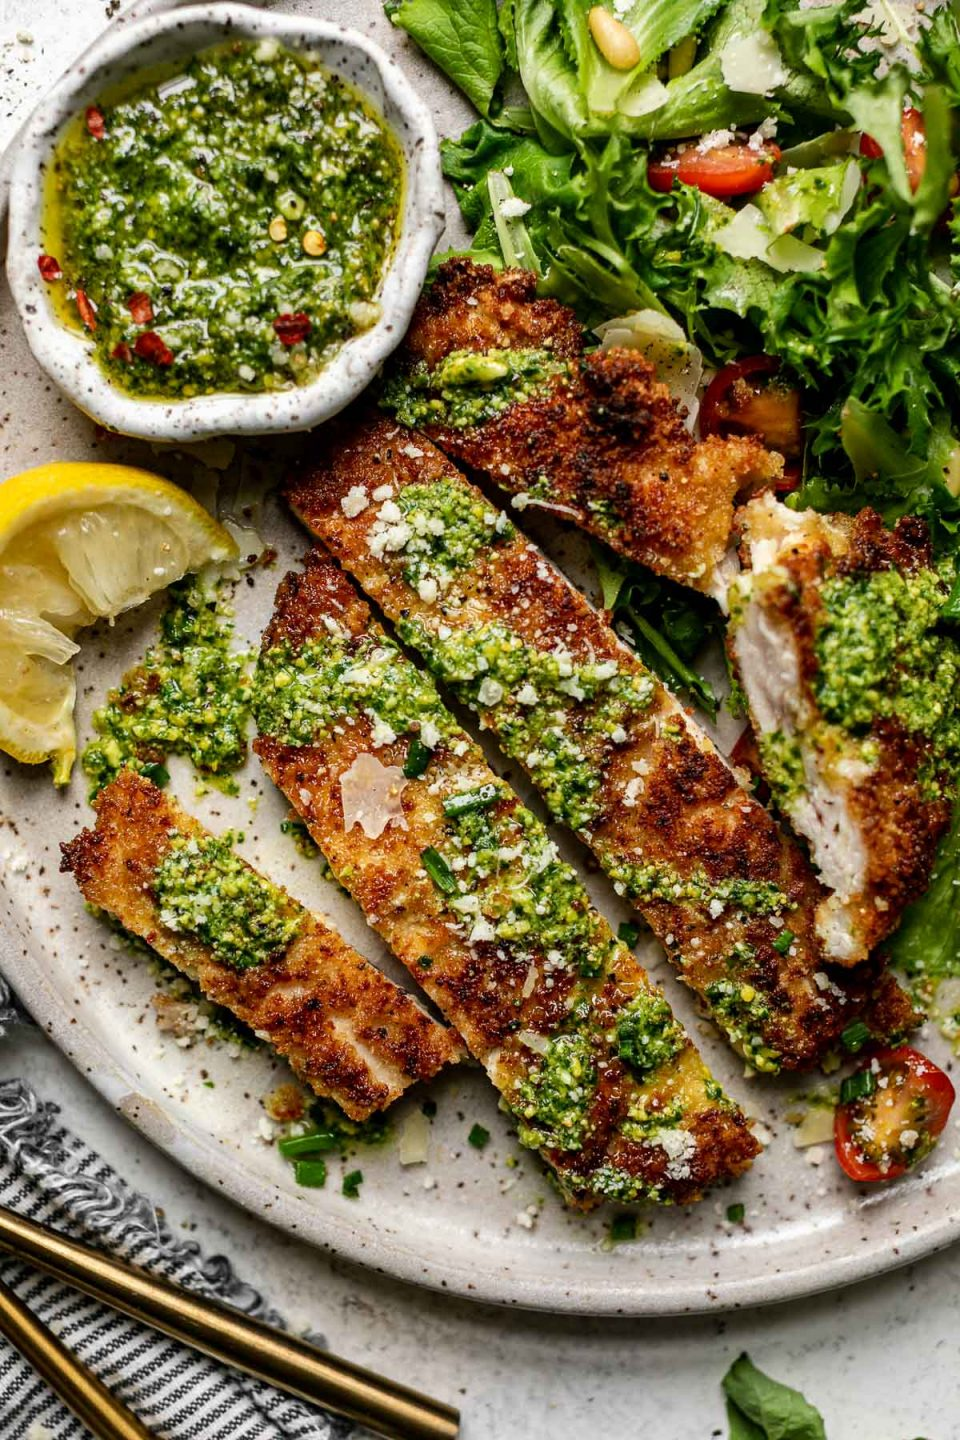 Close up of sliced parmsean chicken breast, topped with pesto & parmesan cheese, on a large plate with a green salad & a small bowl of pesto. The plate sits atop a white surface, next to a gray striped linen napkin.